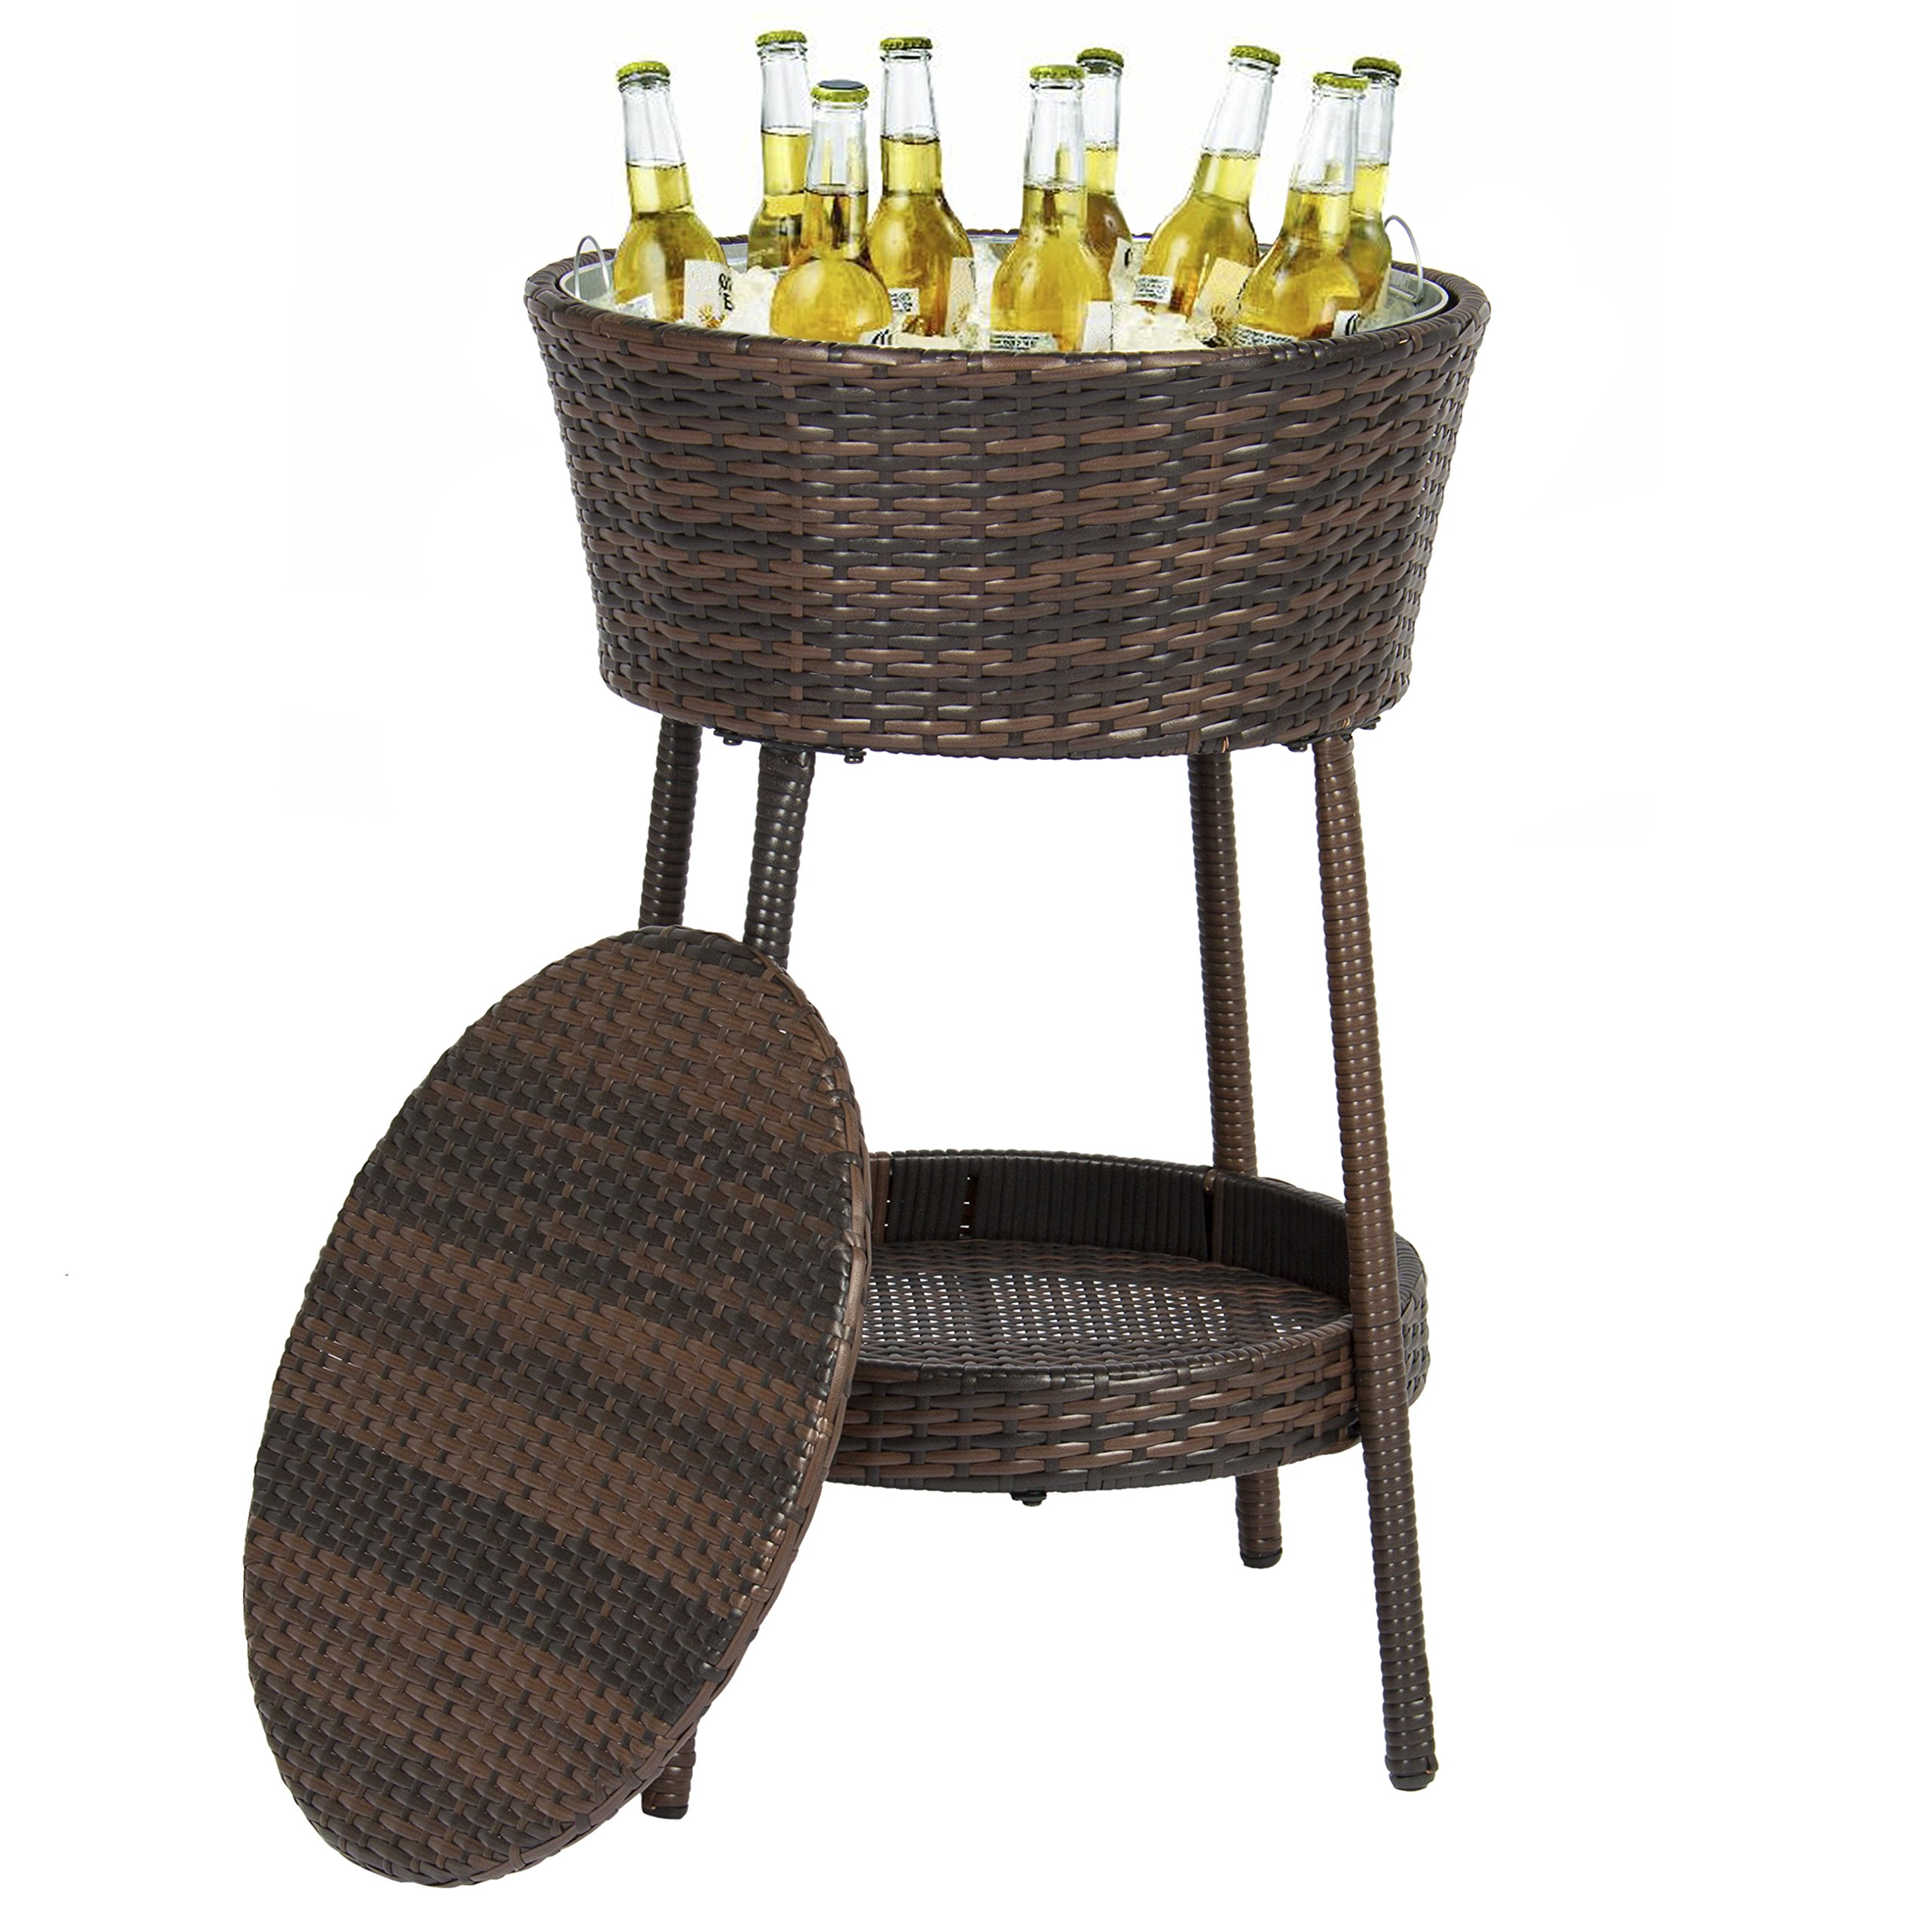 Best Choice Products Wicker Ice Bucket for Outdoor Patio w/Tray, Removable Cover Patio Furniture - Brown